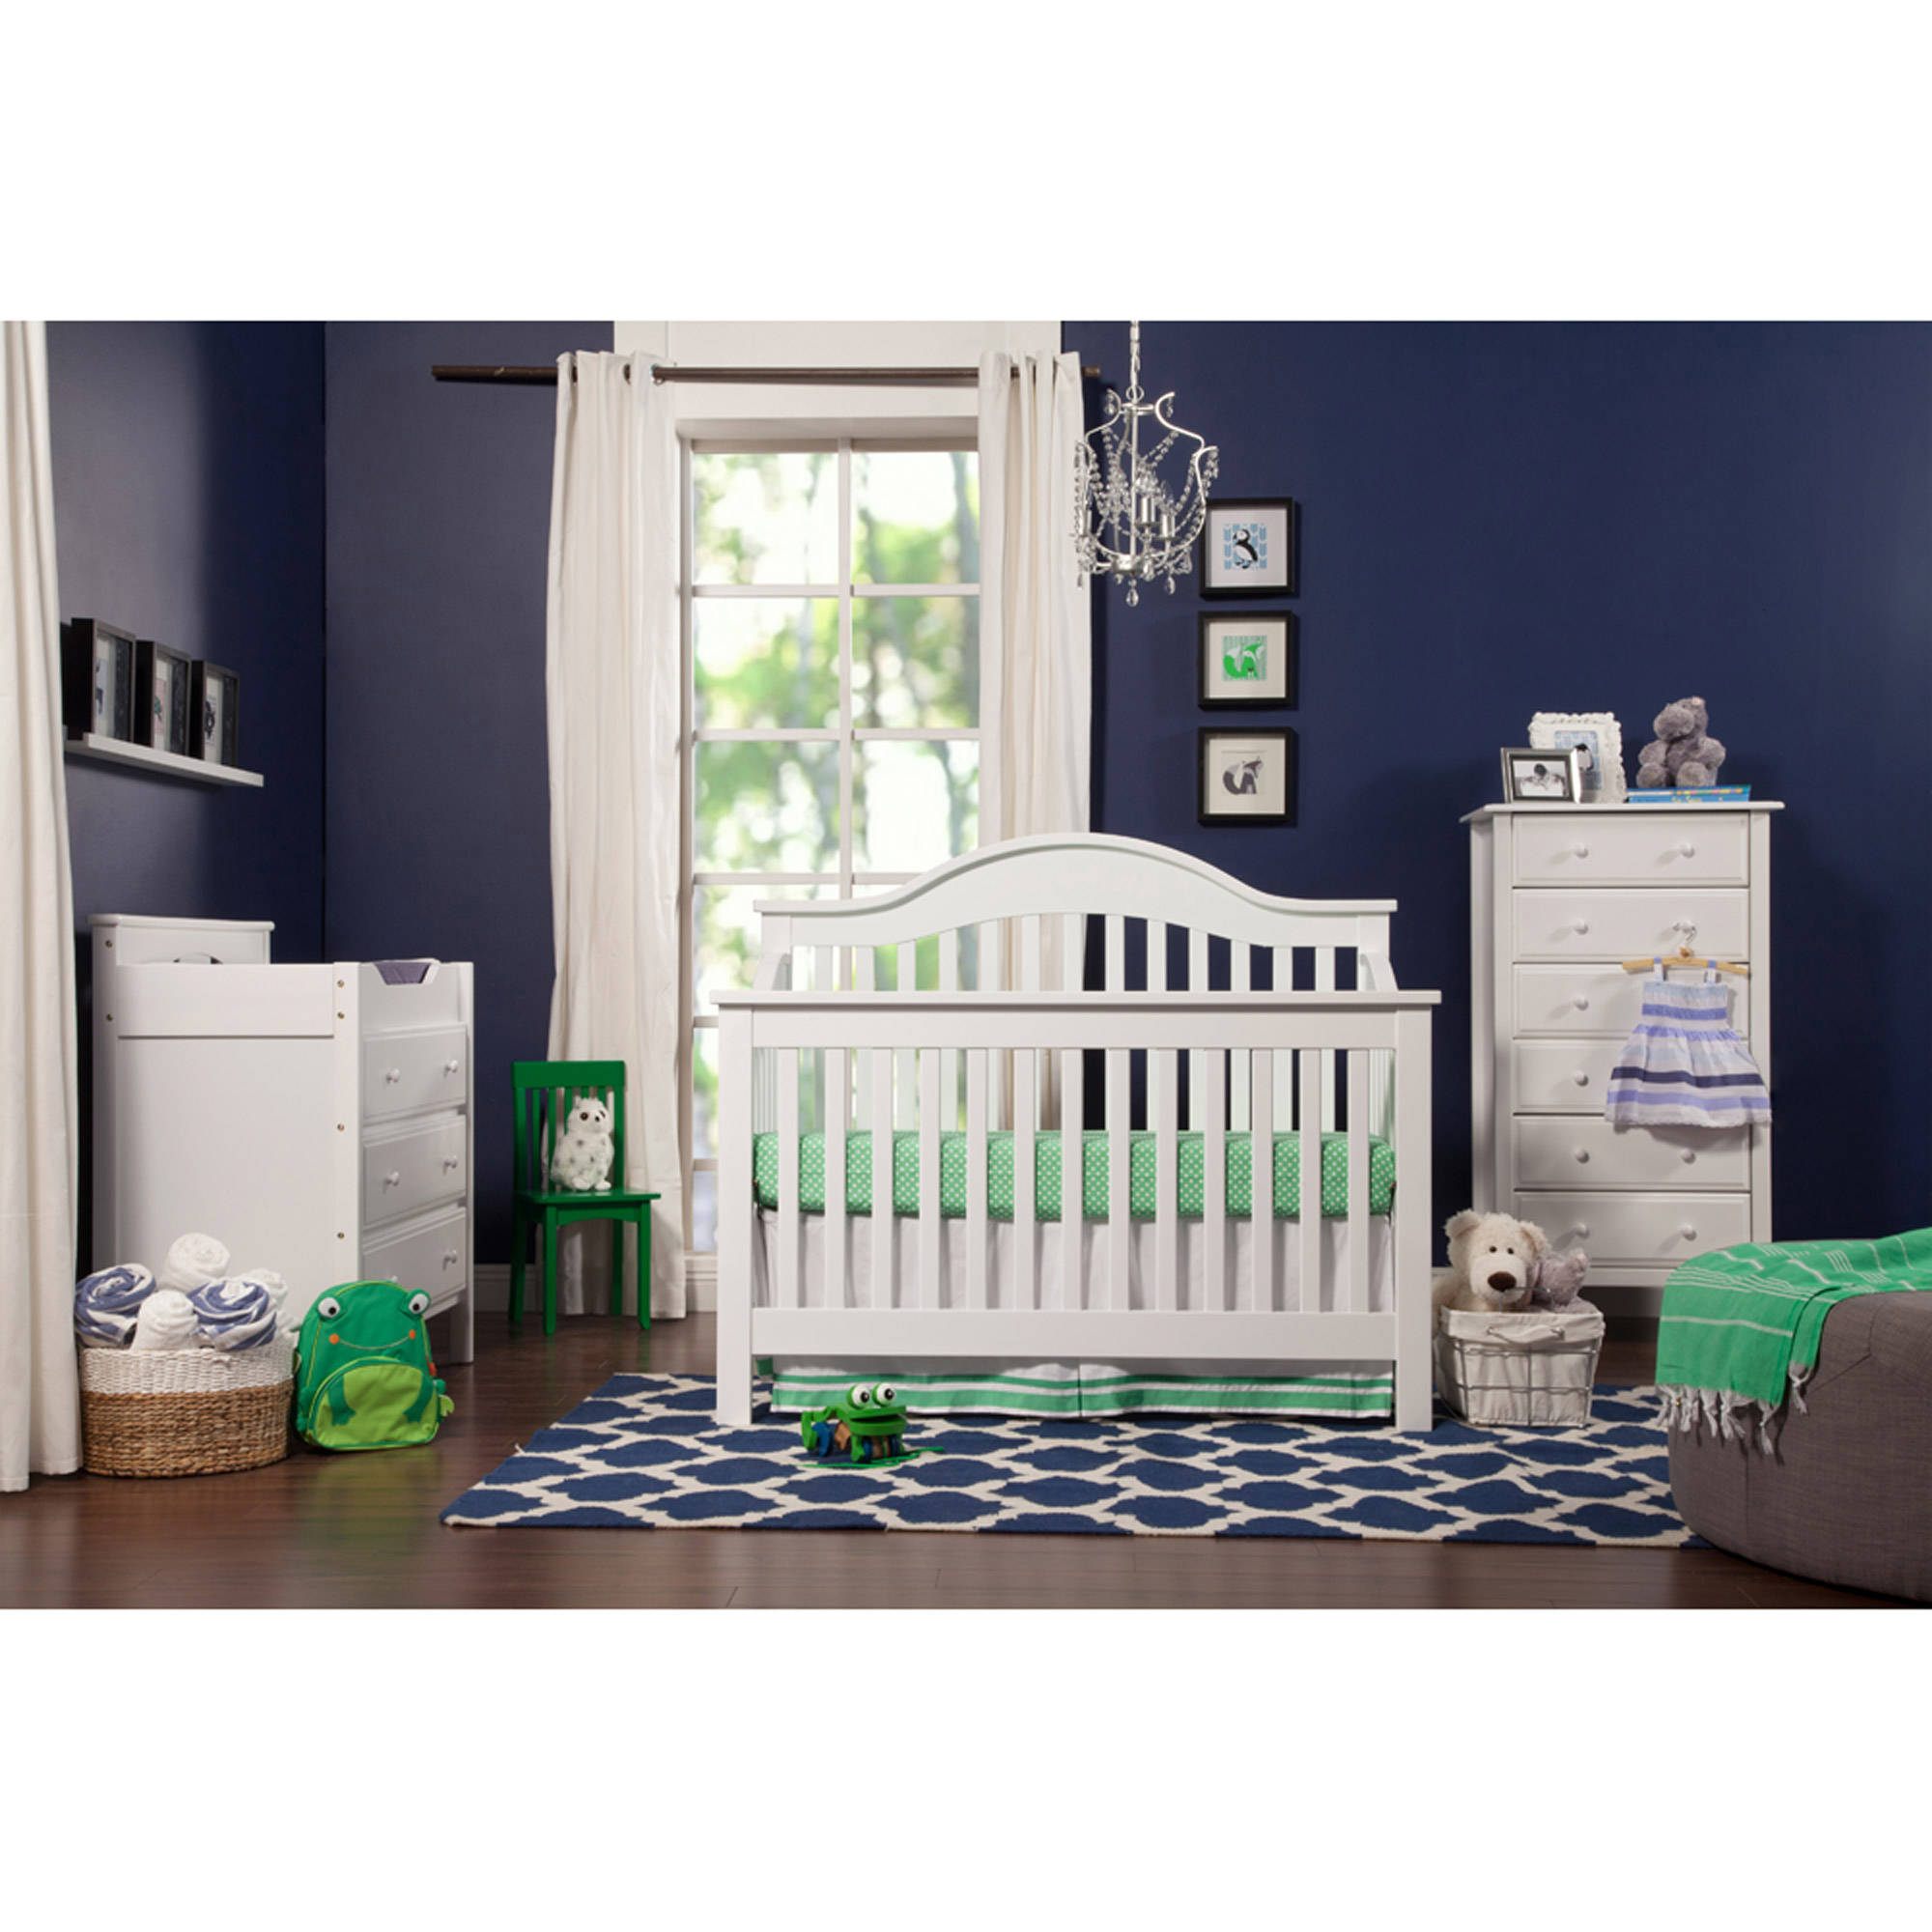 DaVinci - Jayden Stages 4-in-1 Fixed Side Crib, White